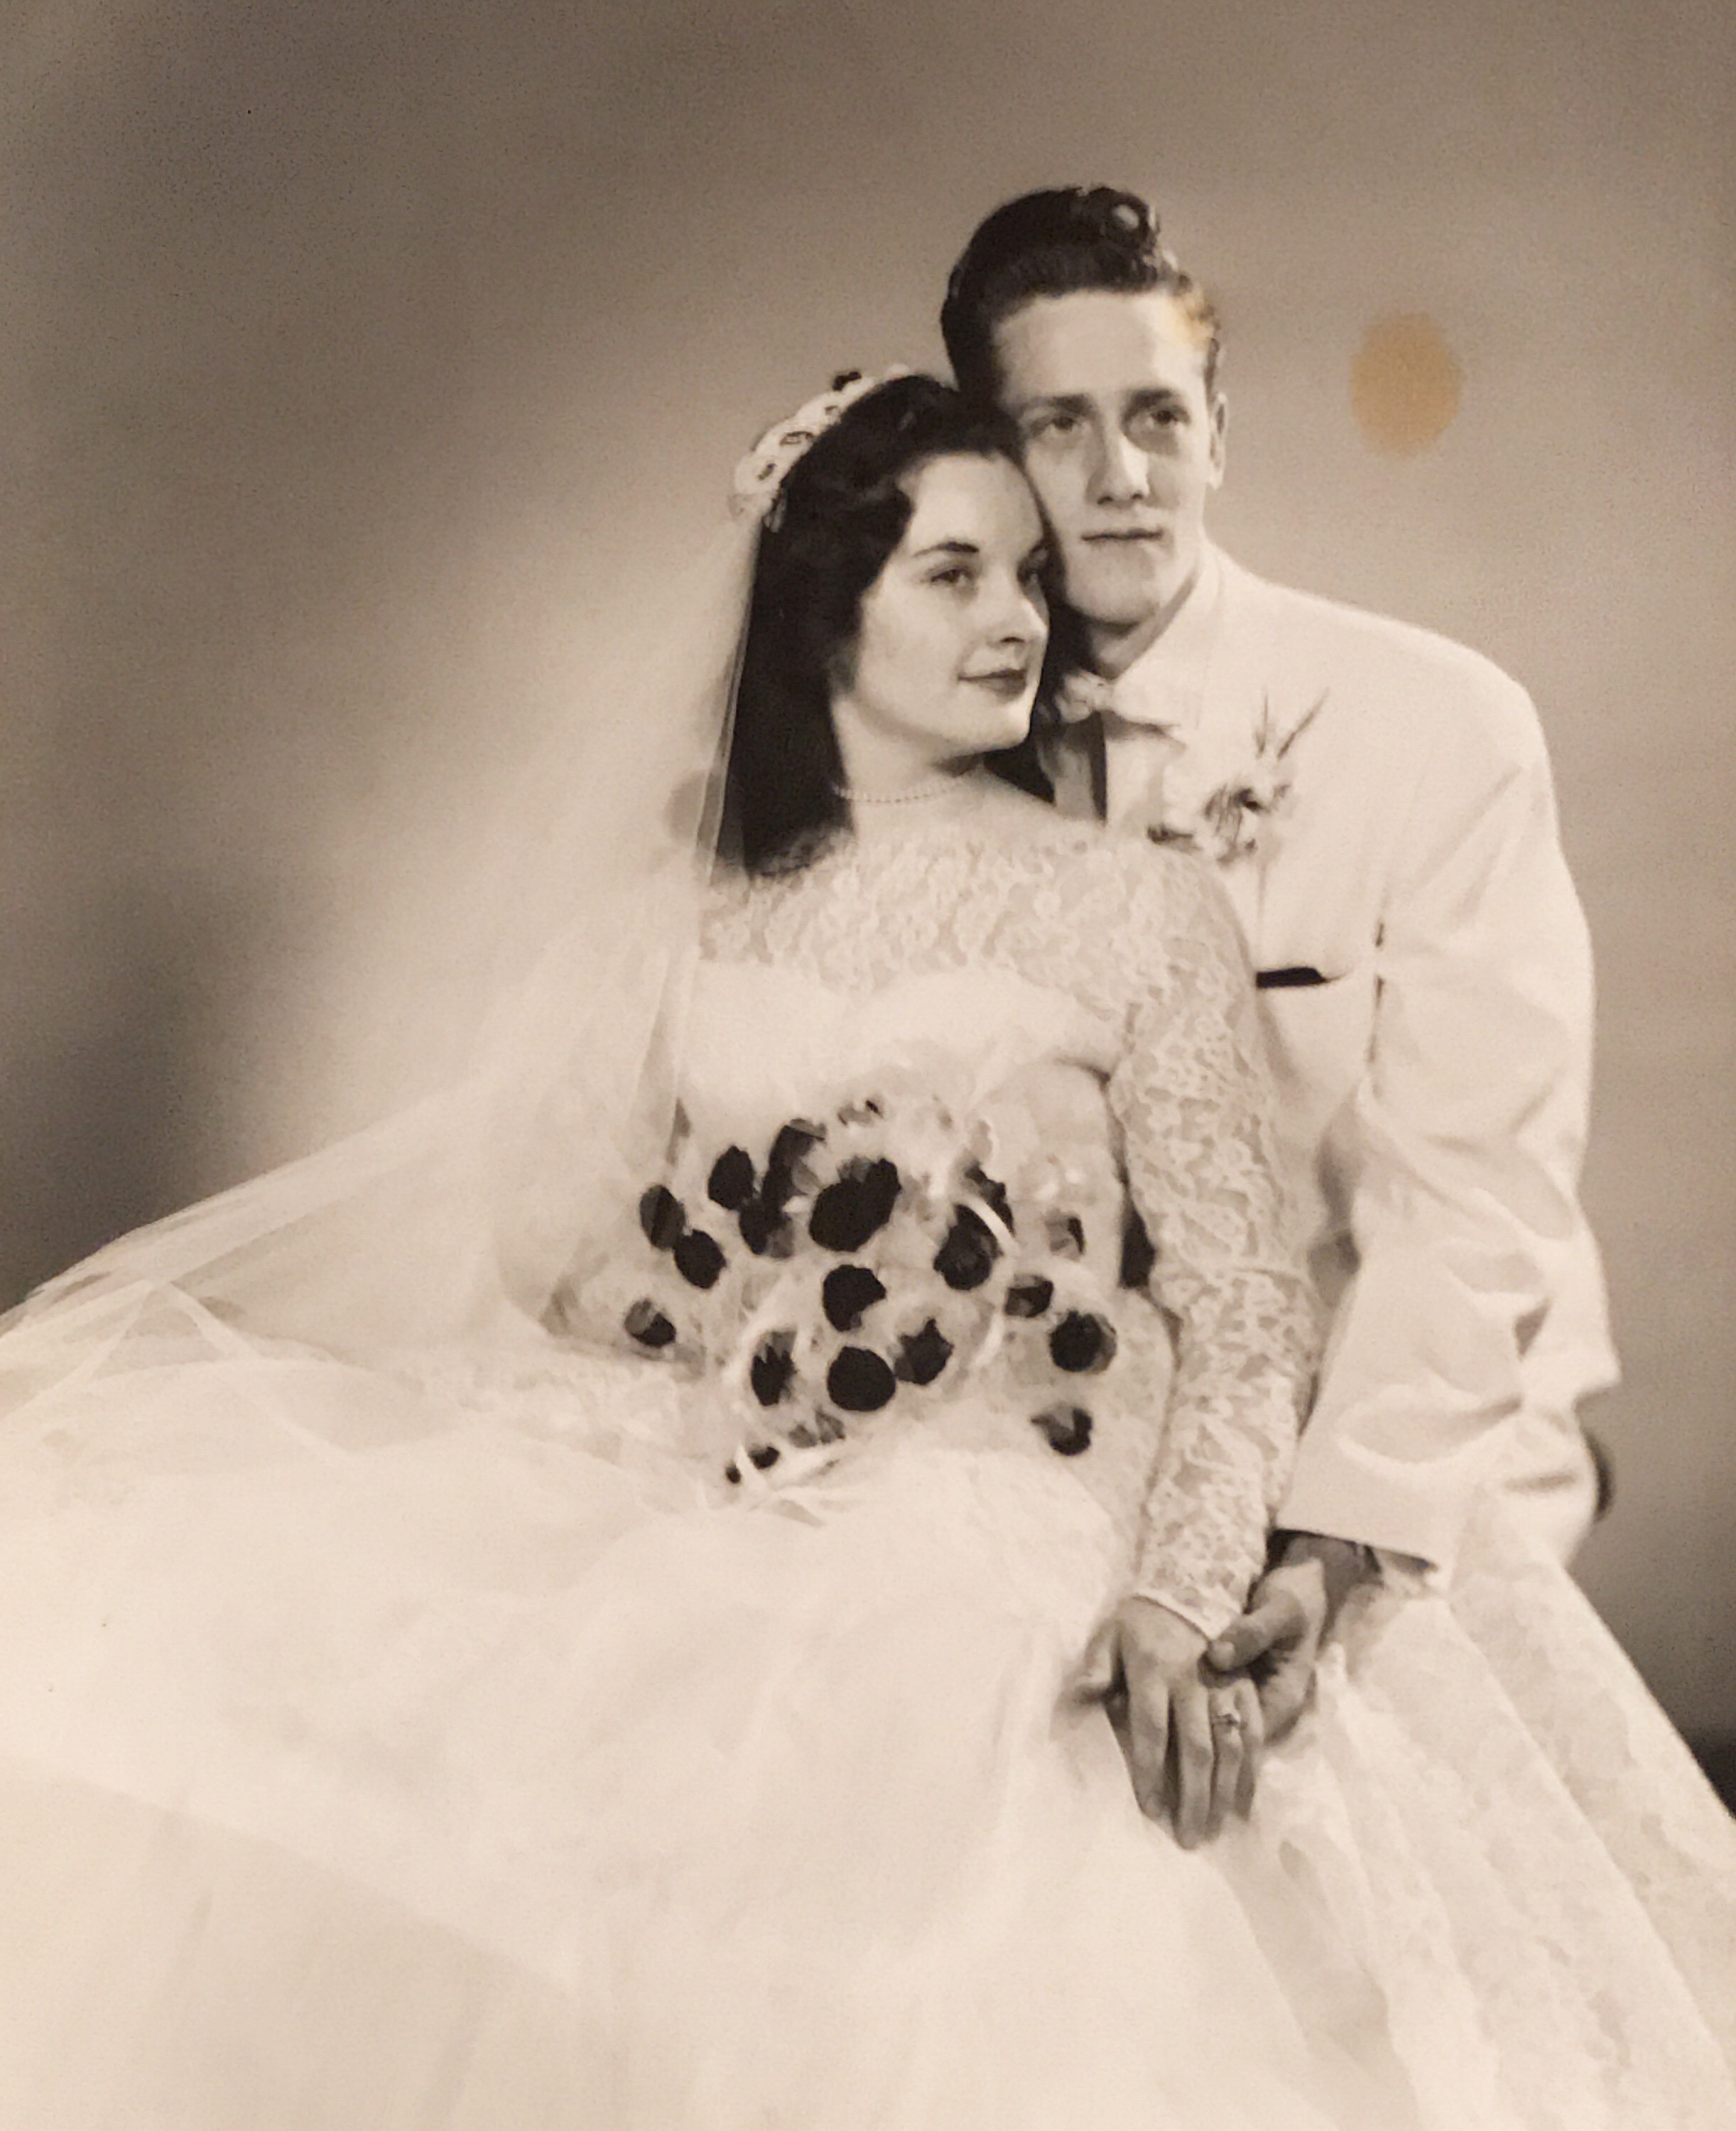 Bill & Janice Tincher, Married 4/5/1958